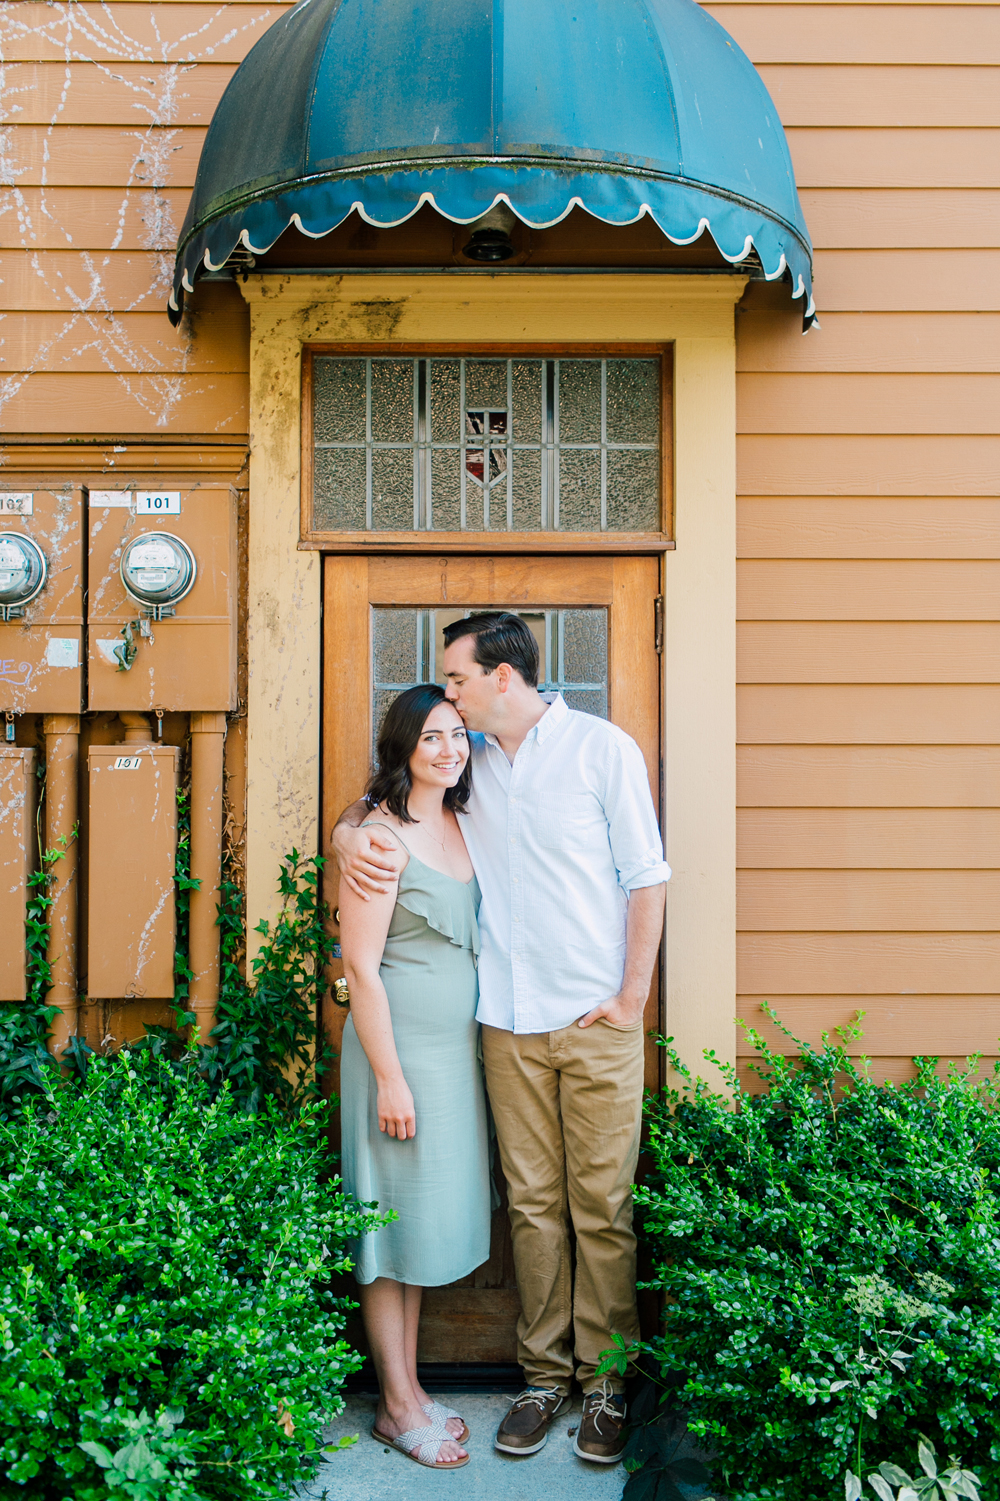 024-bellingham-engagement-photographer-katheyrn-moran-fairhaven-stones-throw-katie-max.jpg